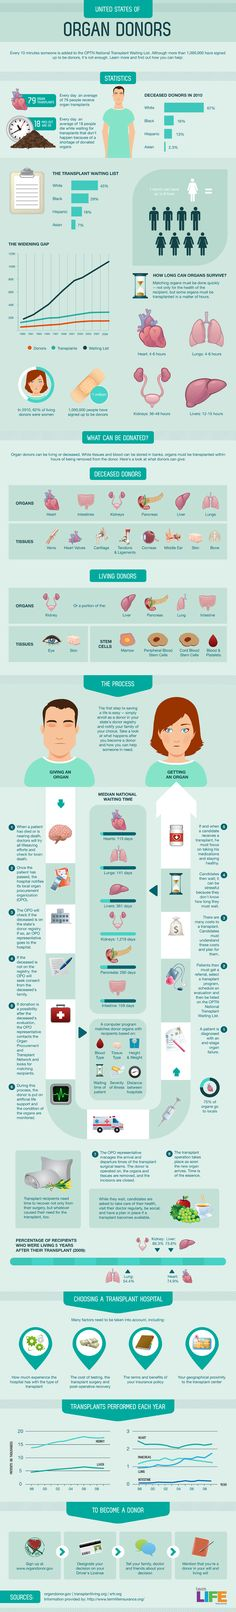 Organ donation poster. Easy to read and great facts.